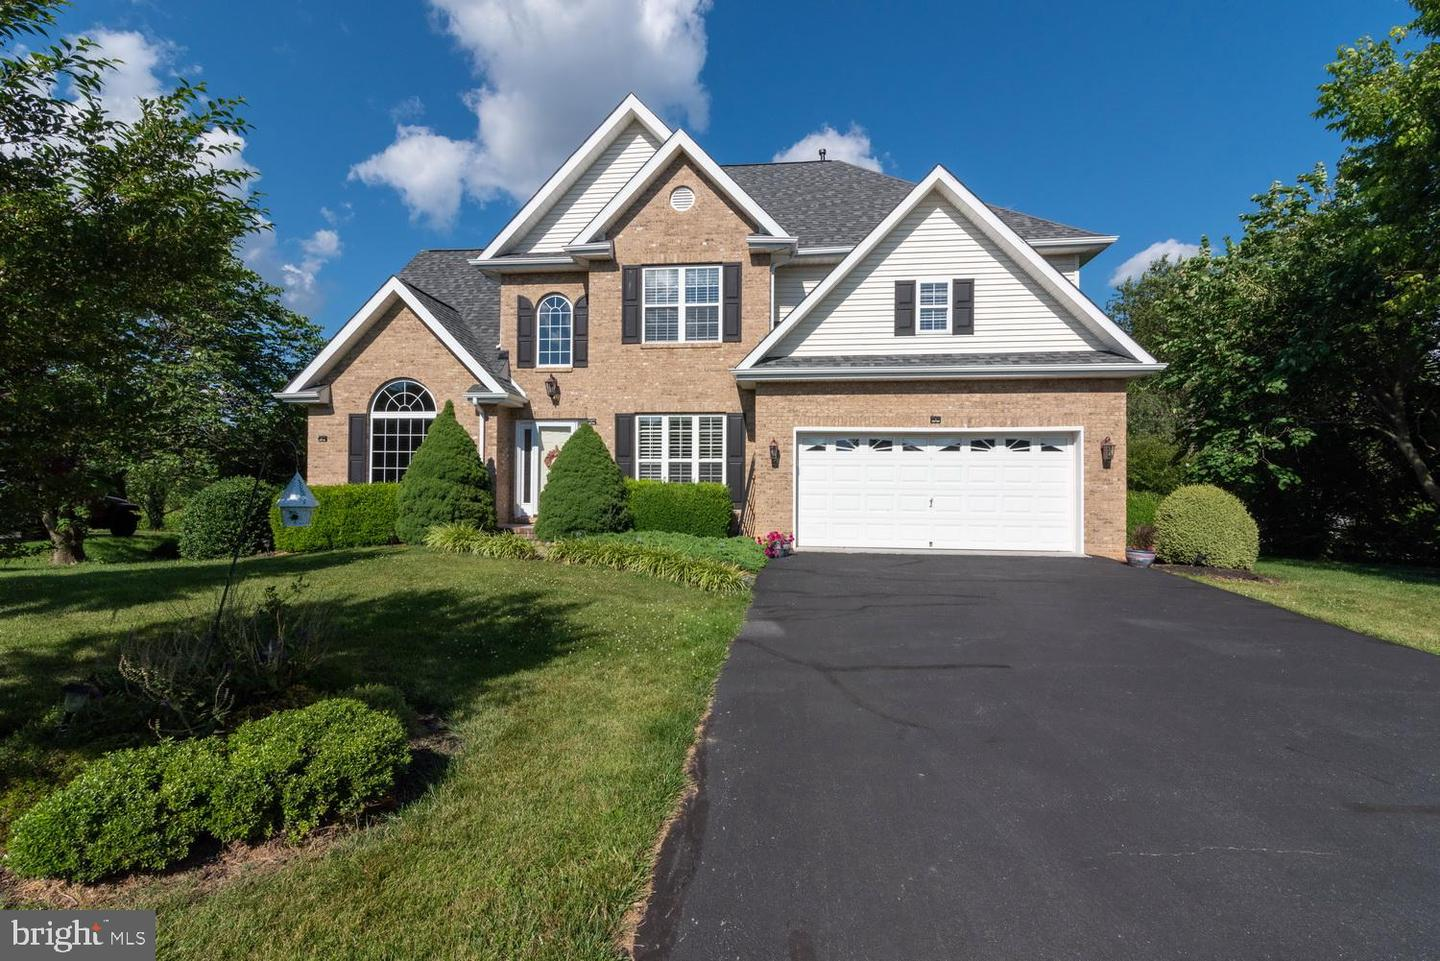 676 Turnberry Dr Charles Town WV 25414